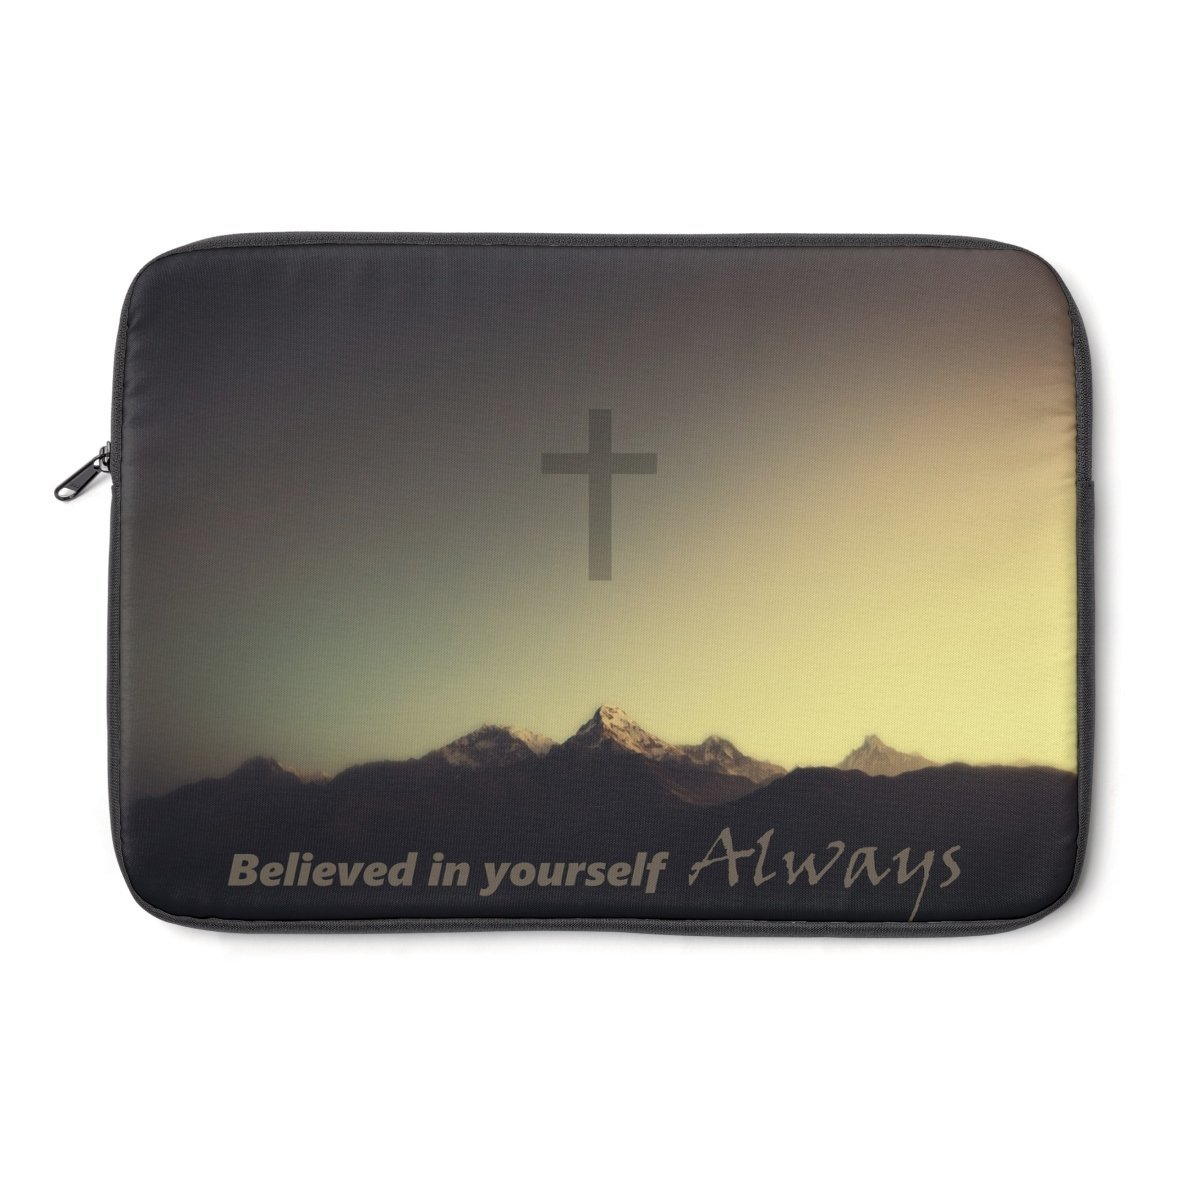 Believed Always Laptop Sleeve